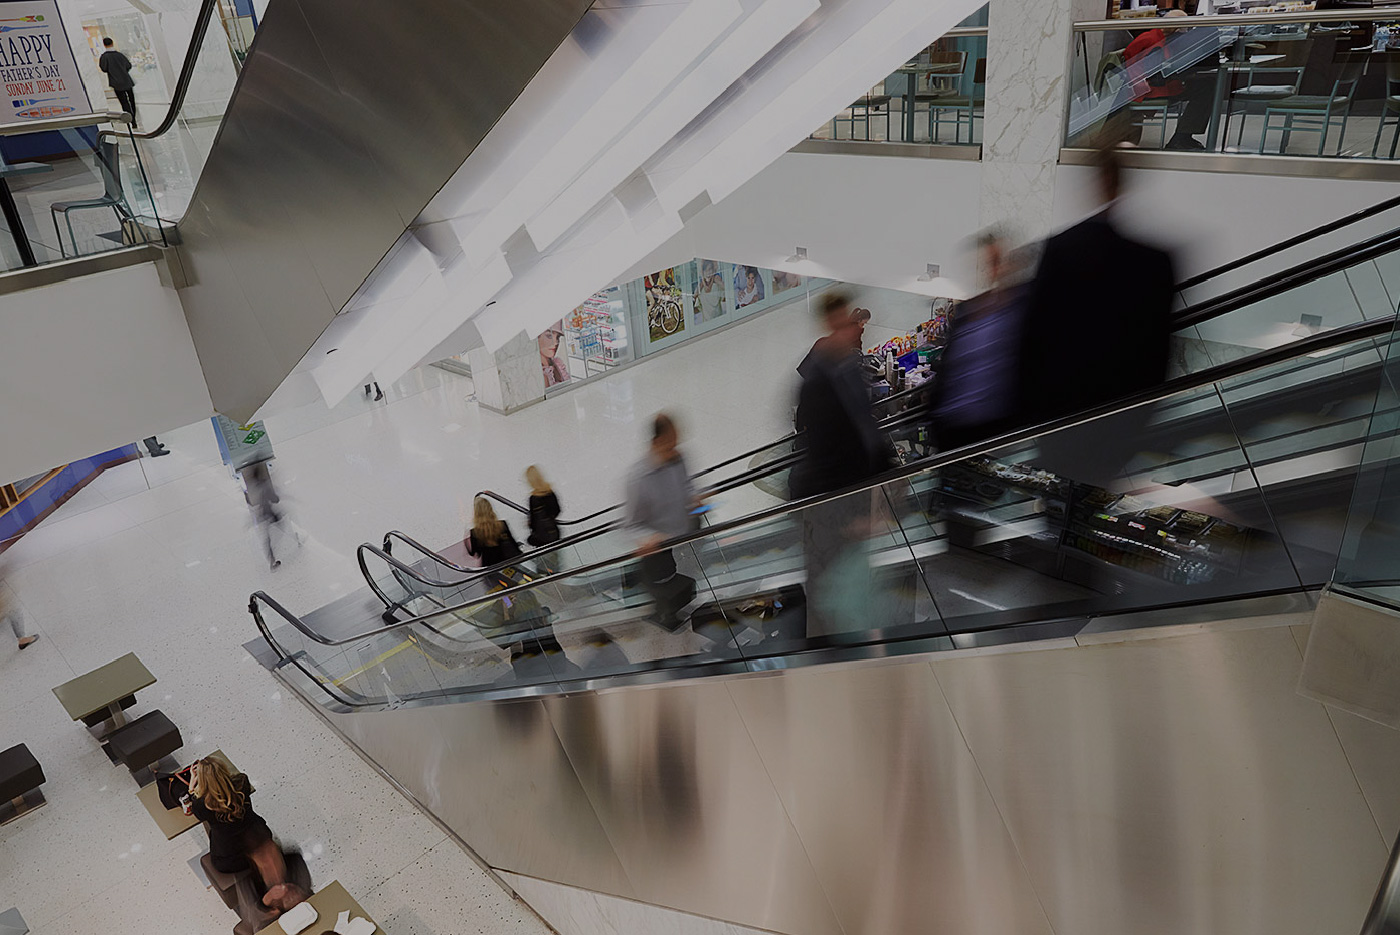 Photo of people on an escalator